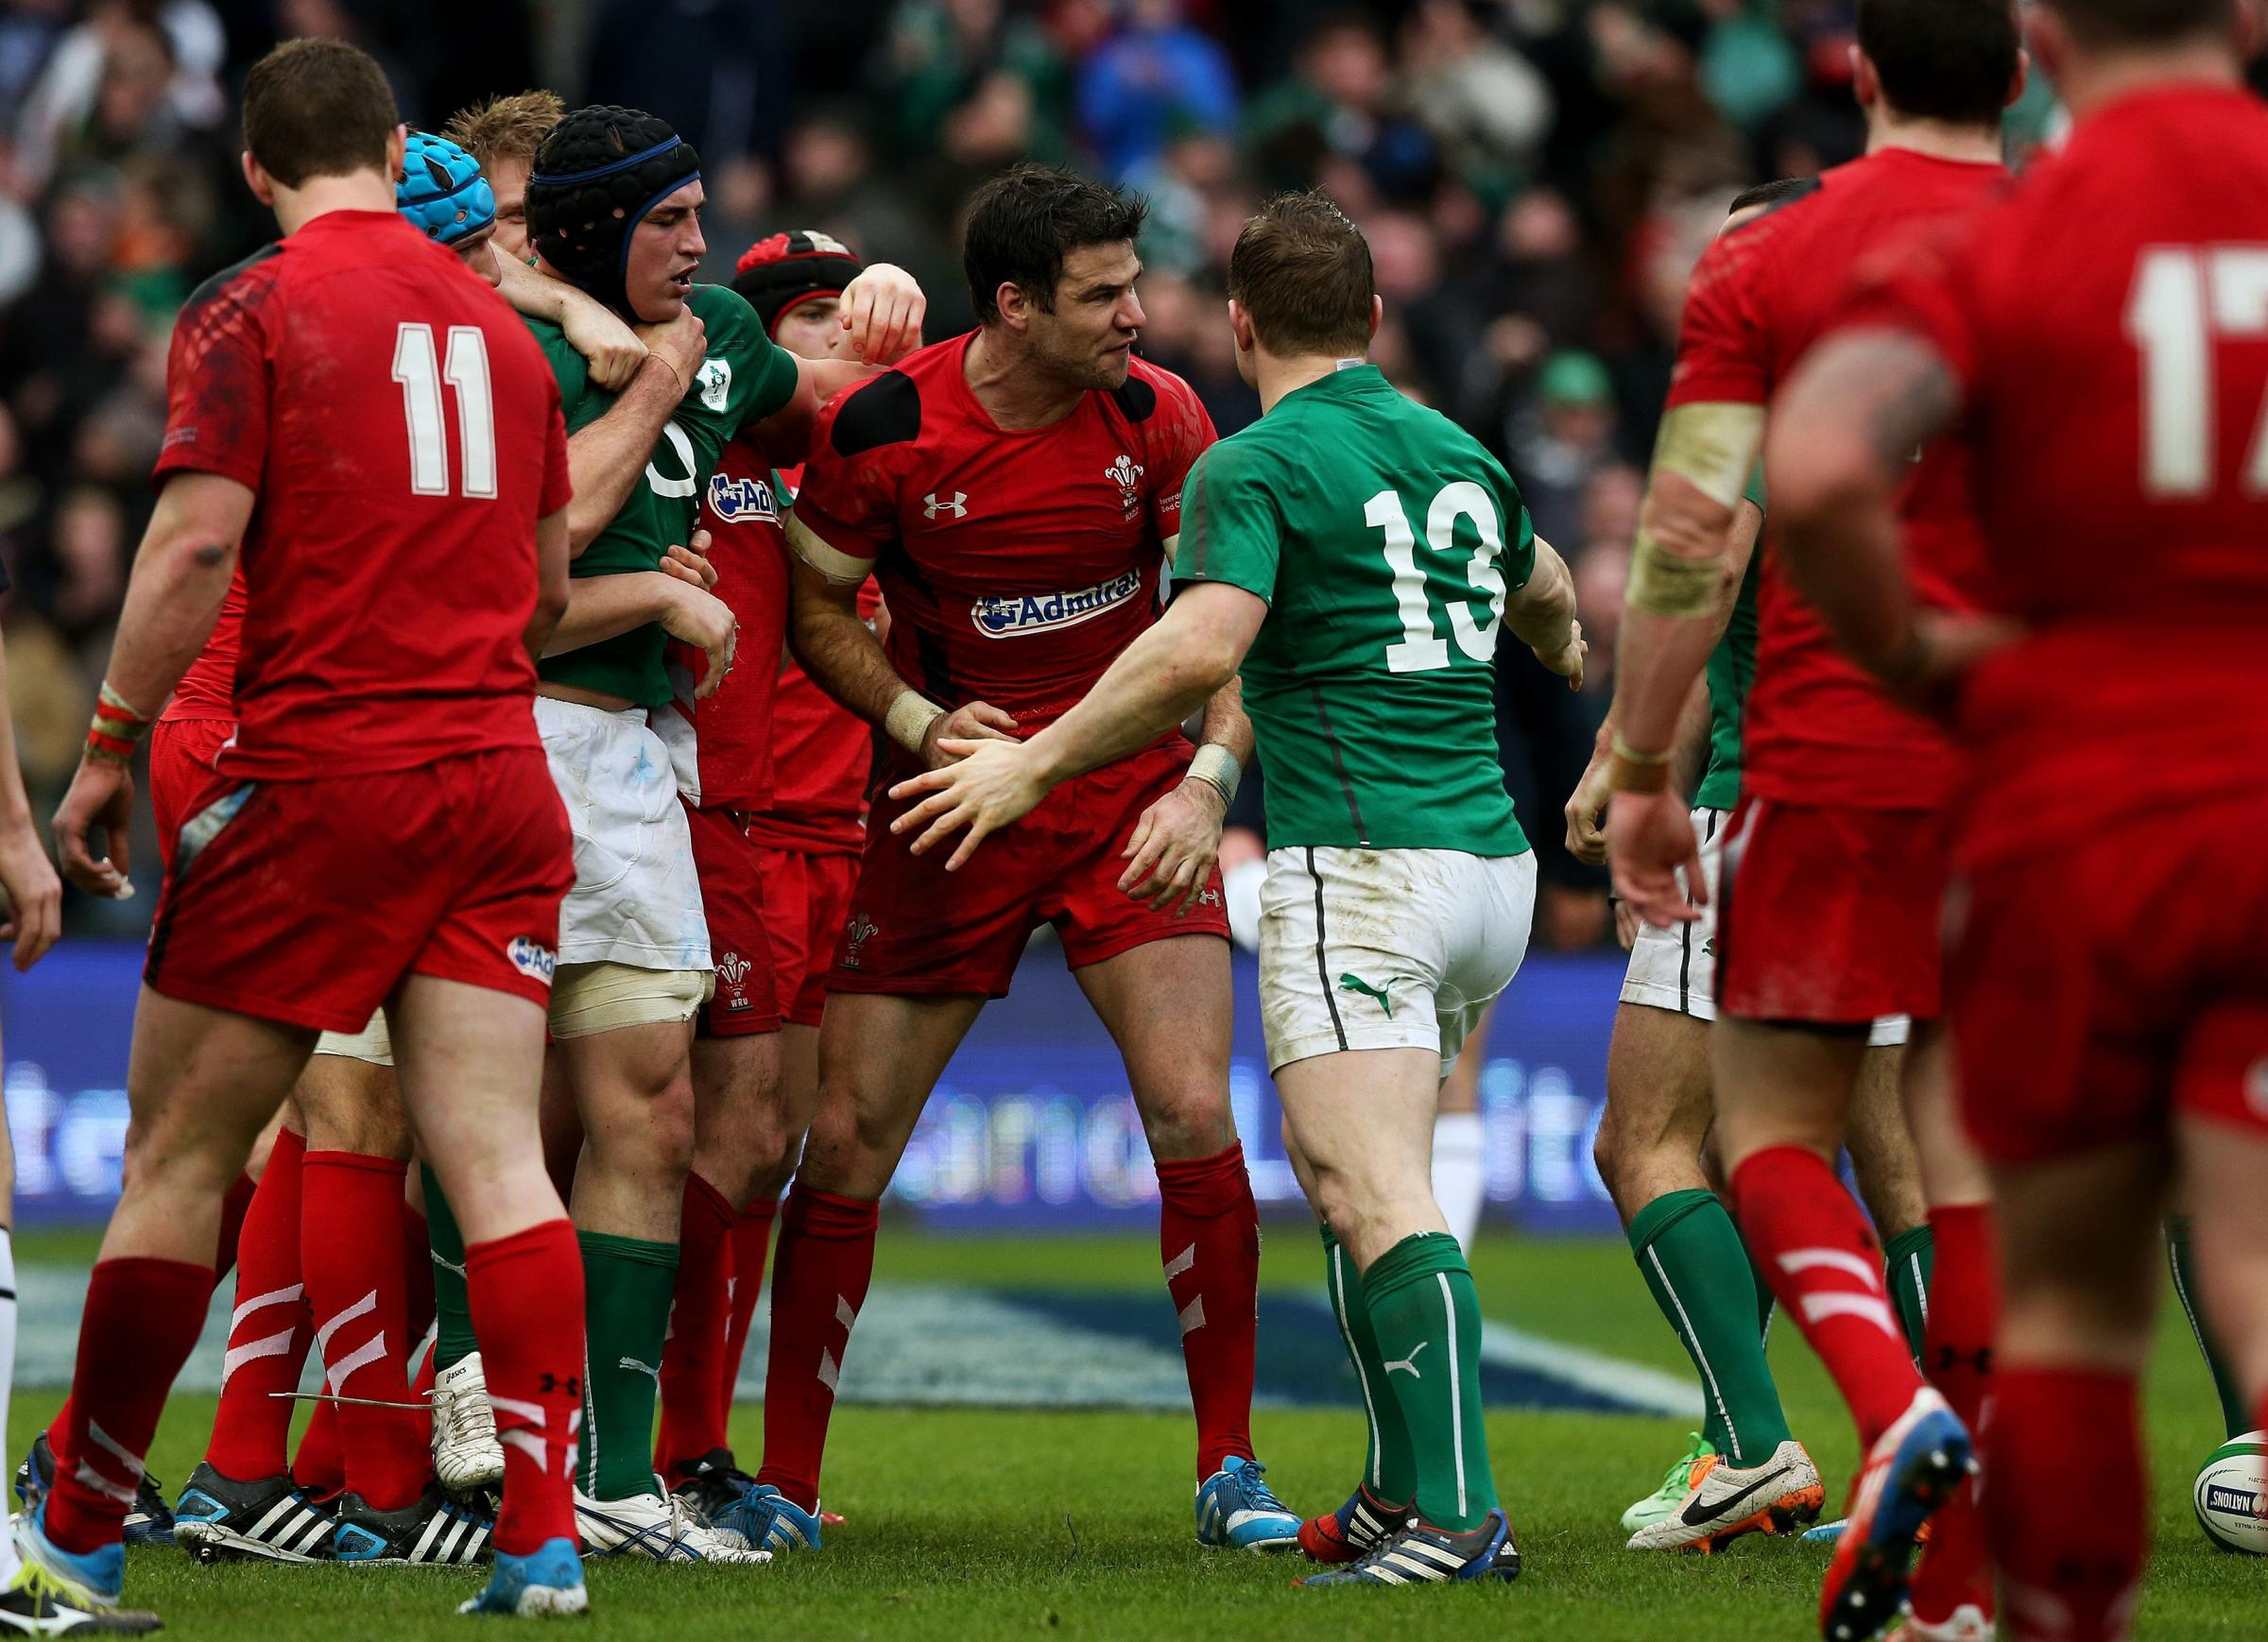 TRIED VALIANTLTY: Mike Phillips battled hard but was sin binned late in the game after this incident which errupted after Liam WIlliams struck Paddy Jackson following the Ireland player scoring his side's second try